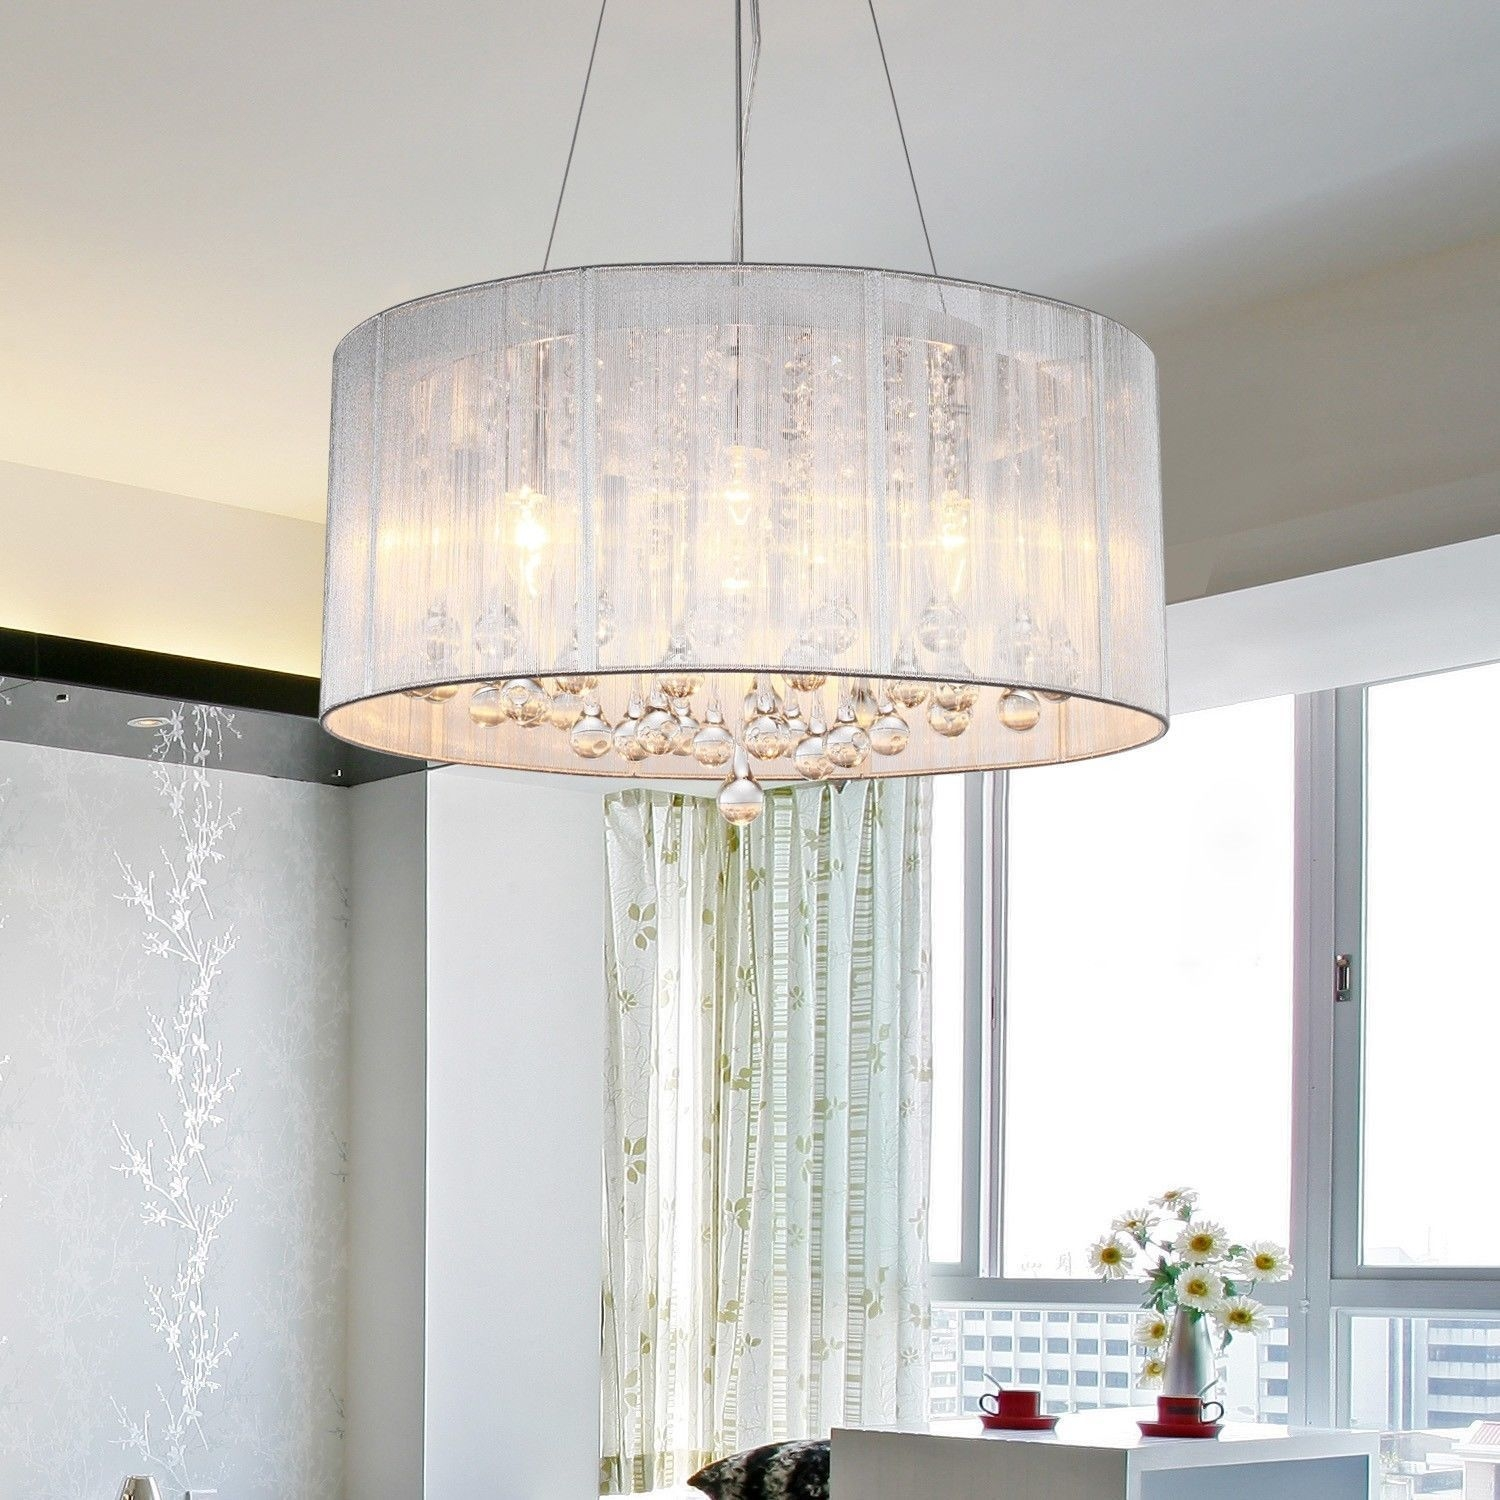 Very Awesome Lamp Shade Chandelier Best Home Decor Inspirations With Regard To Chandeliers With Lamp Shades (Image 24 of 25)